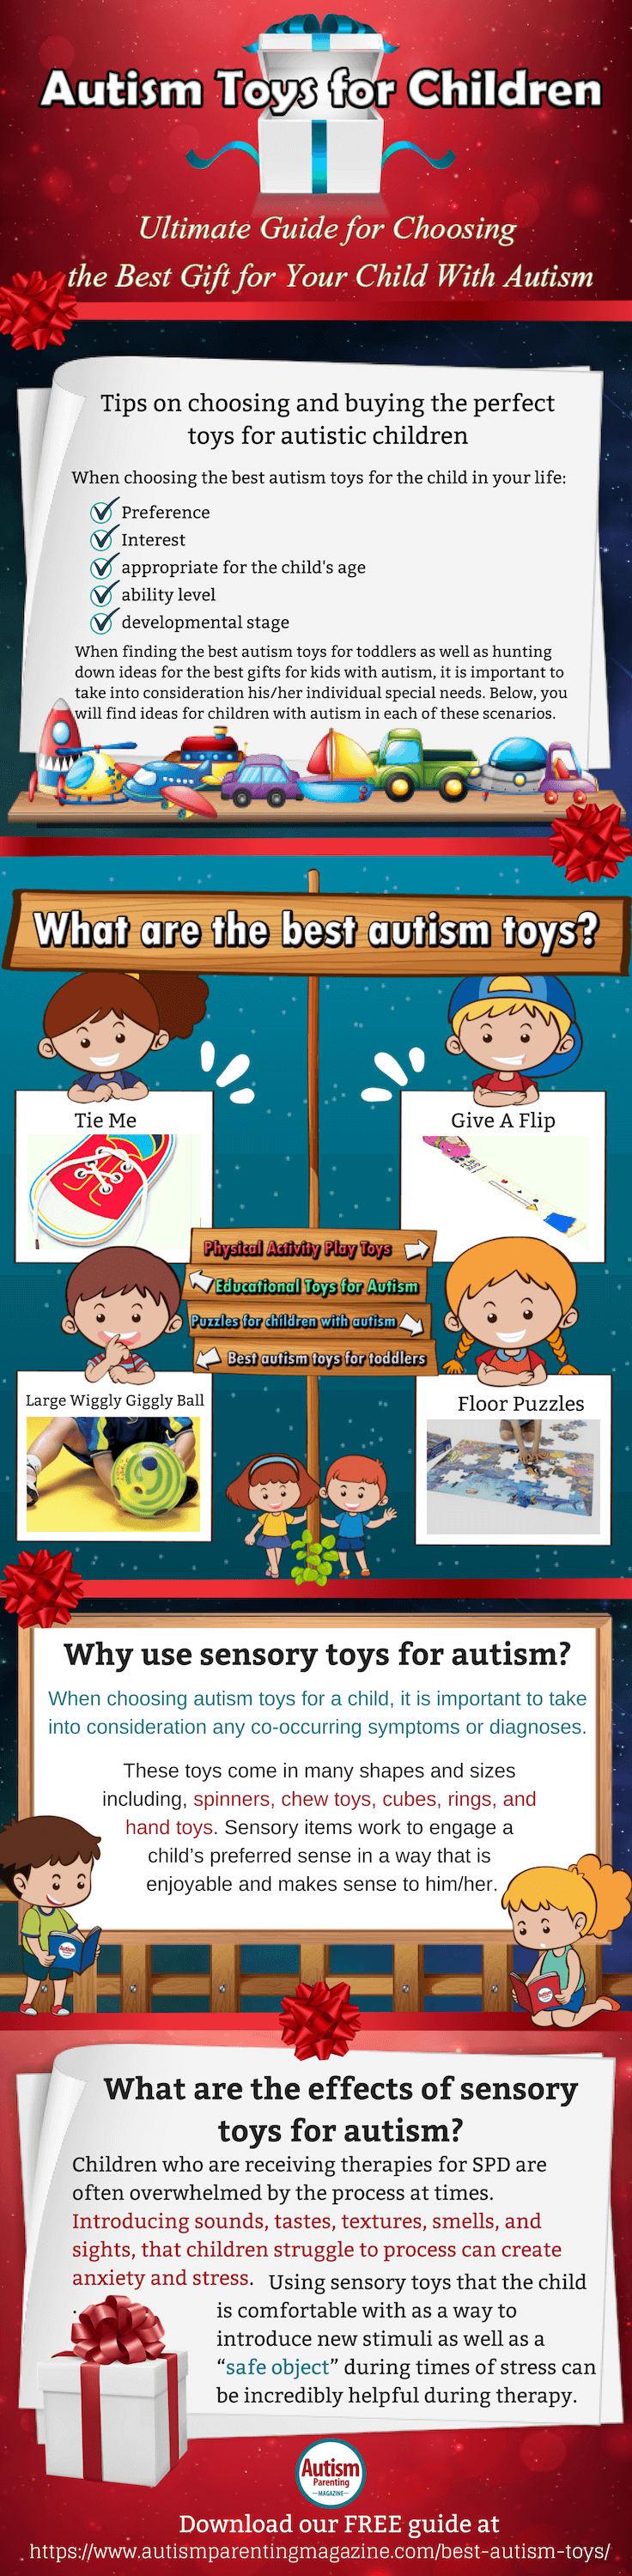 Autism Toys for Children: Ultimate Guide for Choosing the Best Gift for Your Child With Autism